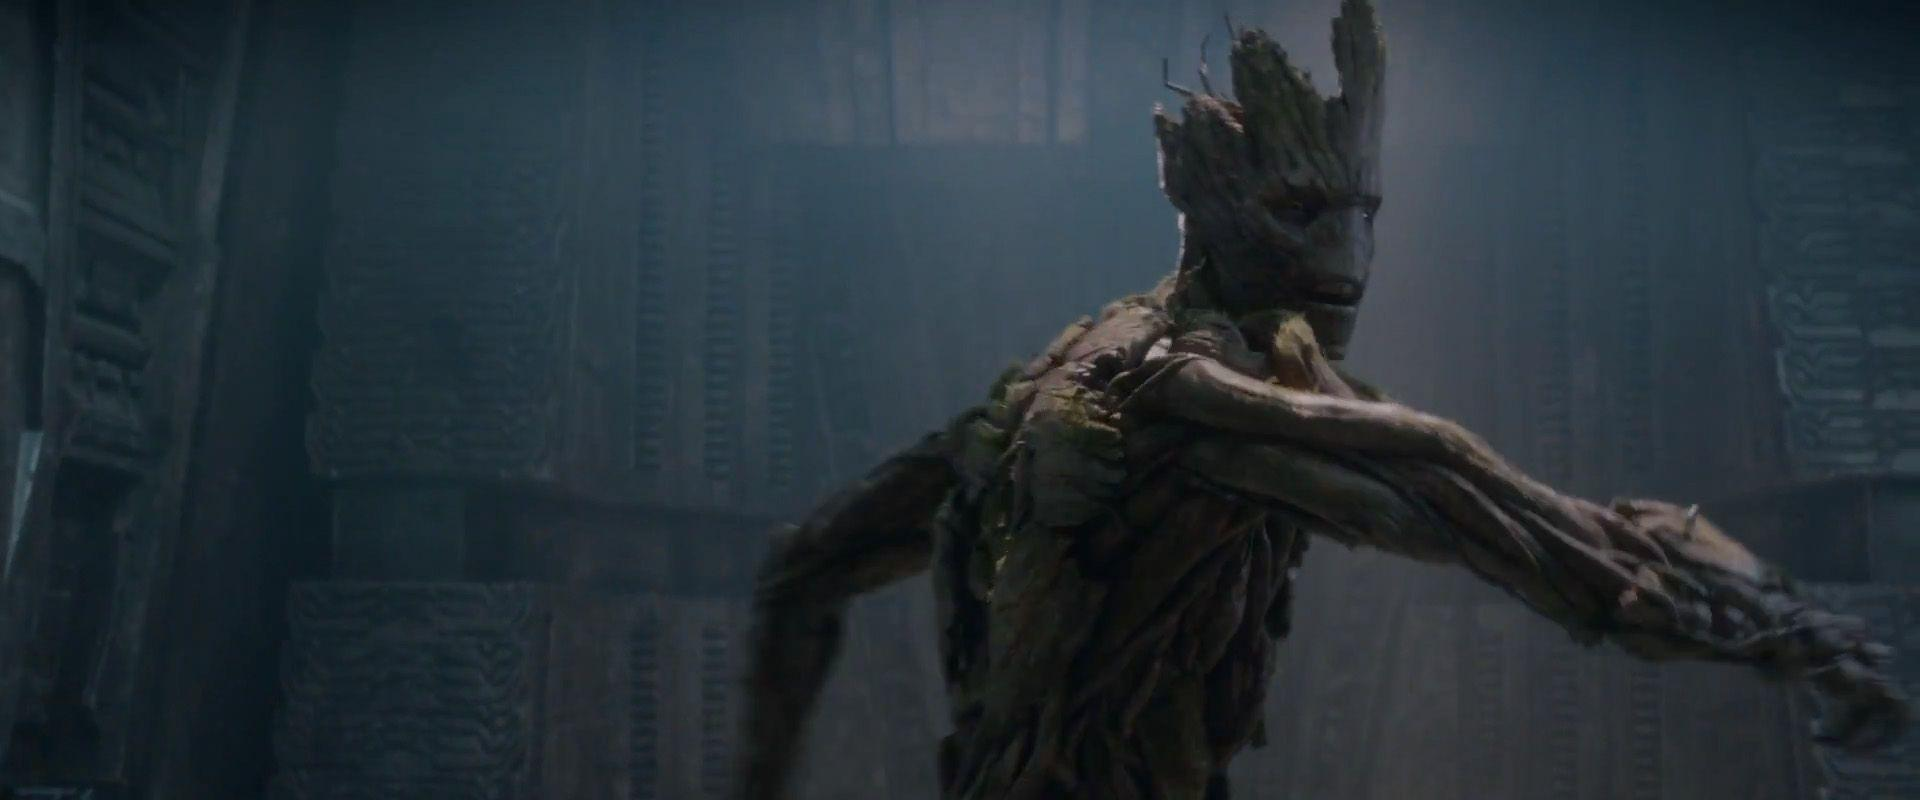 Baby Groot Wallpaper HD - WallpaperSafari